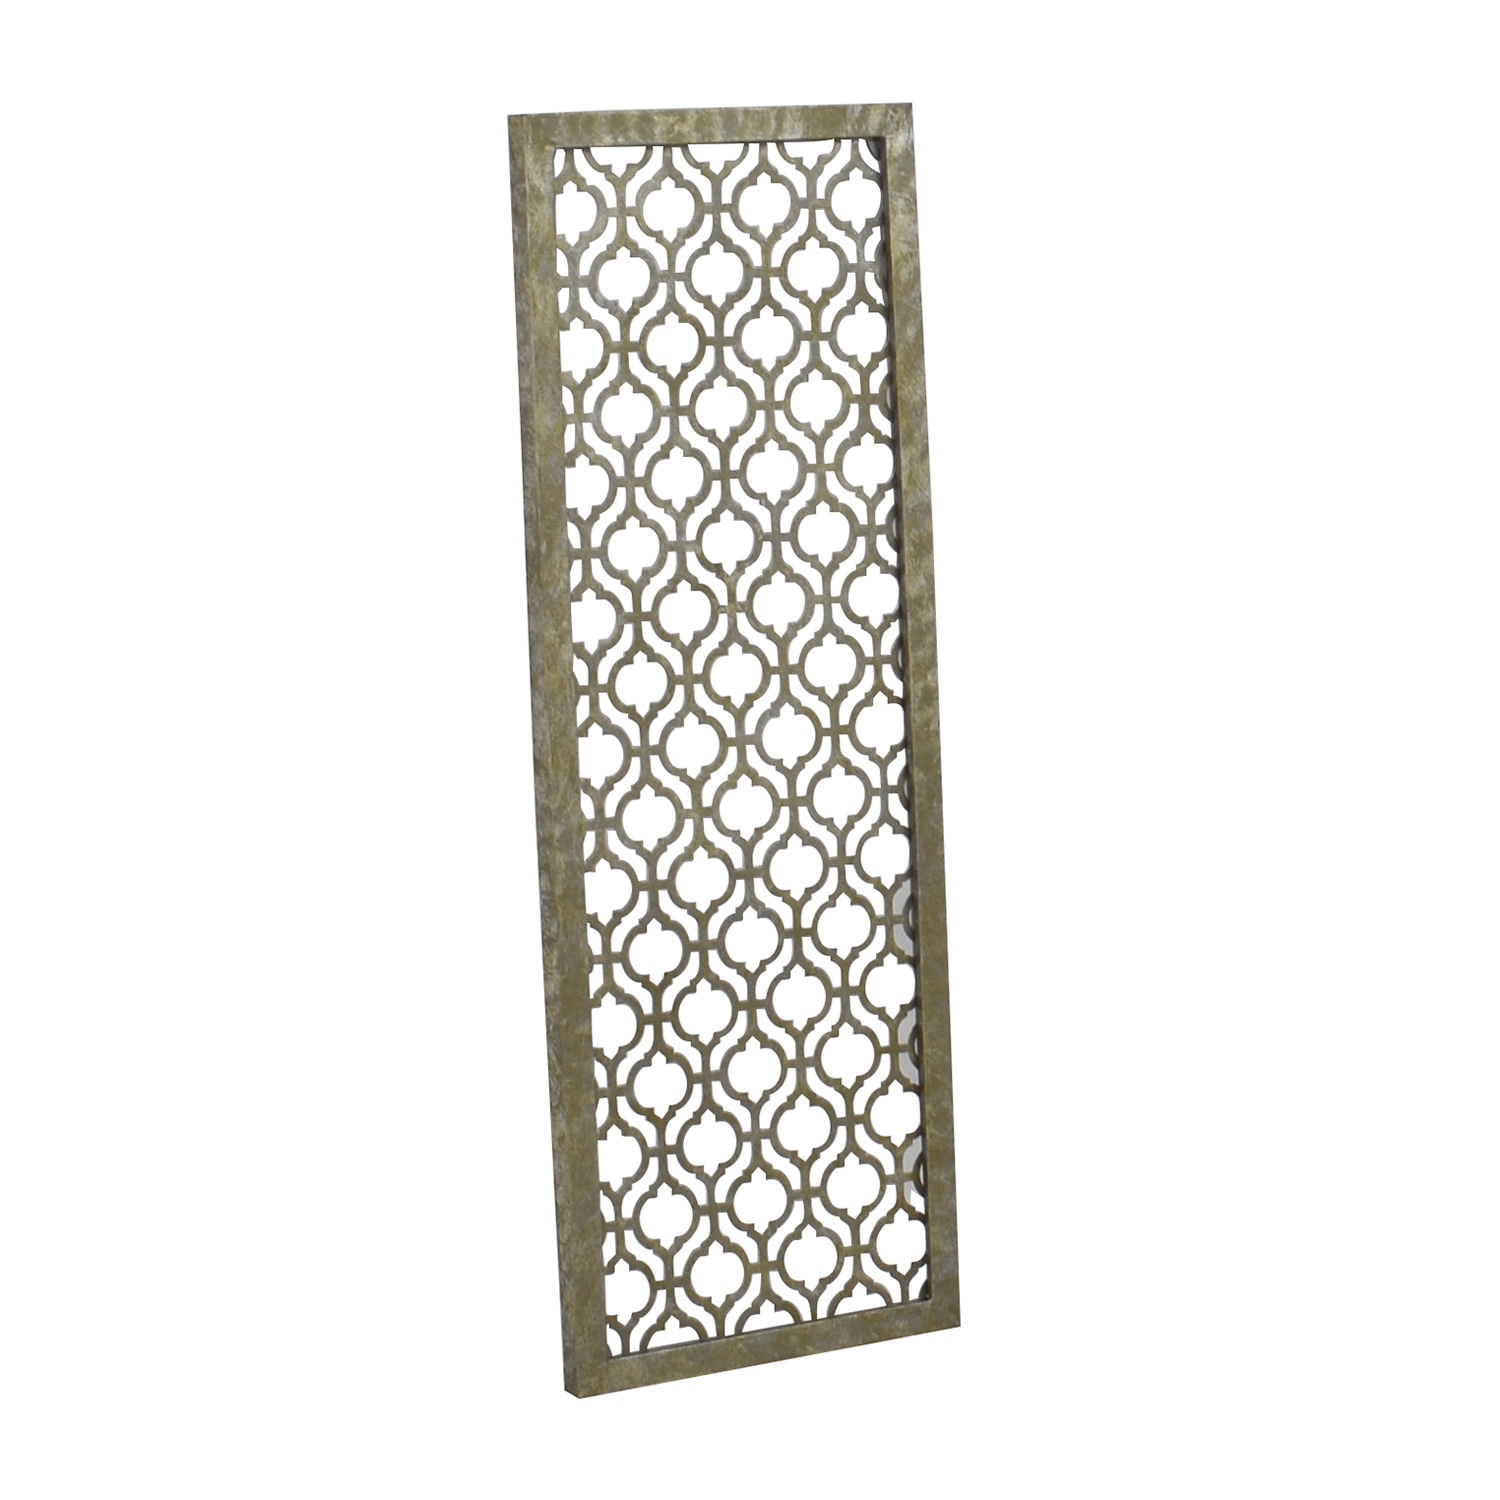 Pier 1 Imports Pier 1 Imports Trellis Metal Wall Panel Decorative Accents